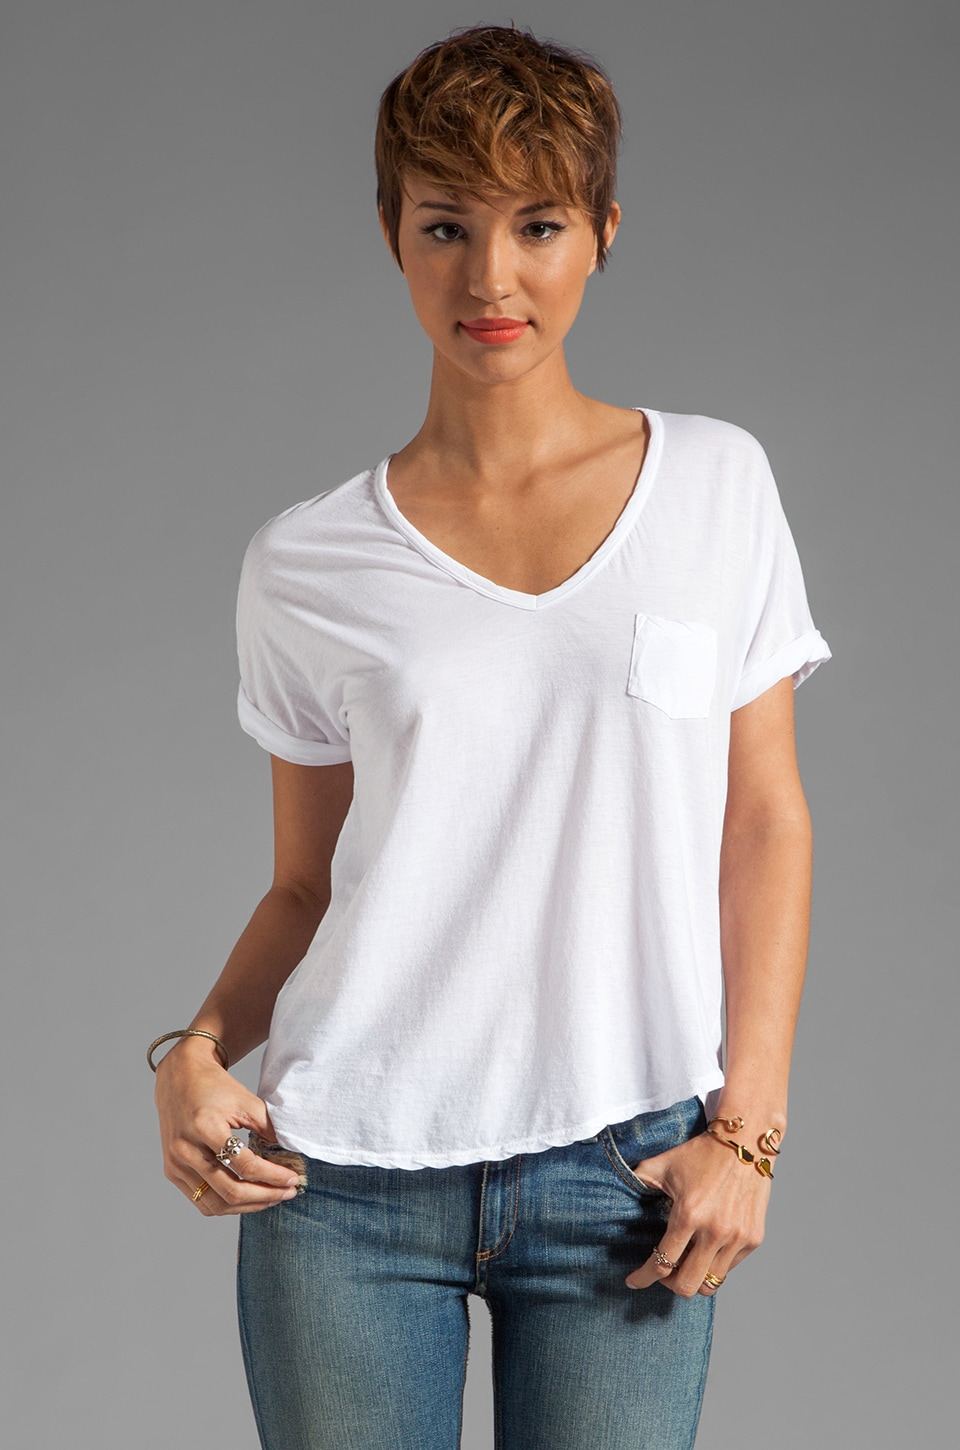 Velvet by Graham & Spencer Sheer Jersey Abba Pocket Tee in White